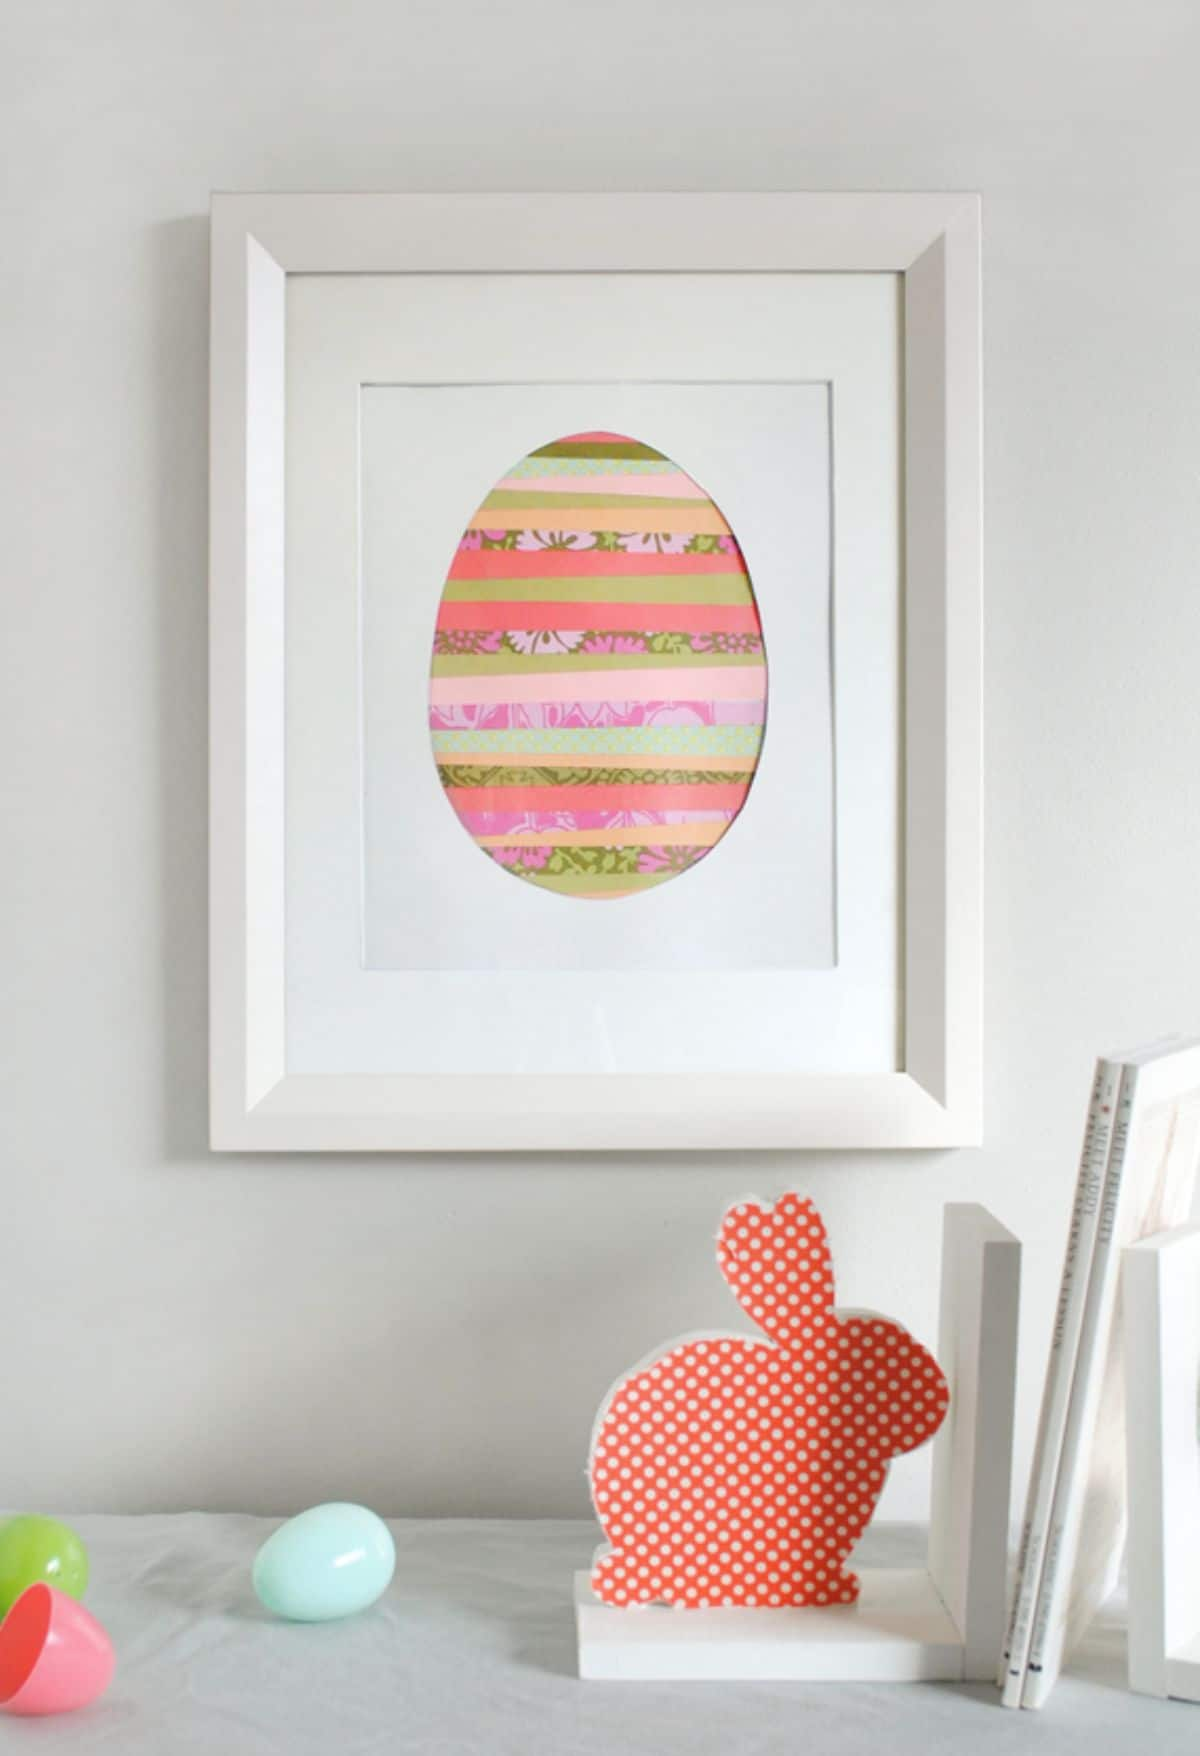 Hanging on a wall is a framed picture of a striped egg. In front sits a red bunny cutout